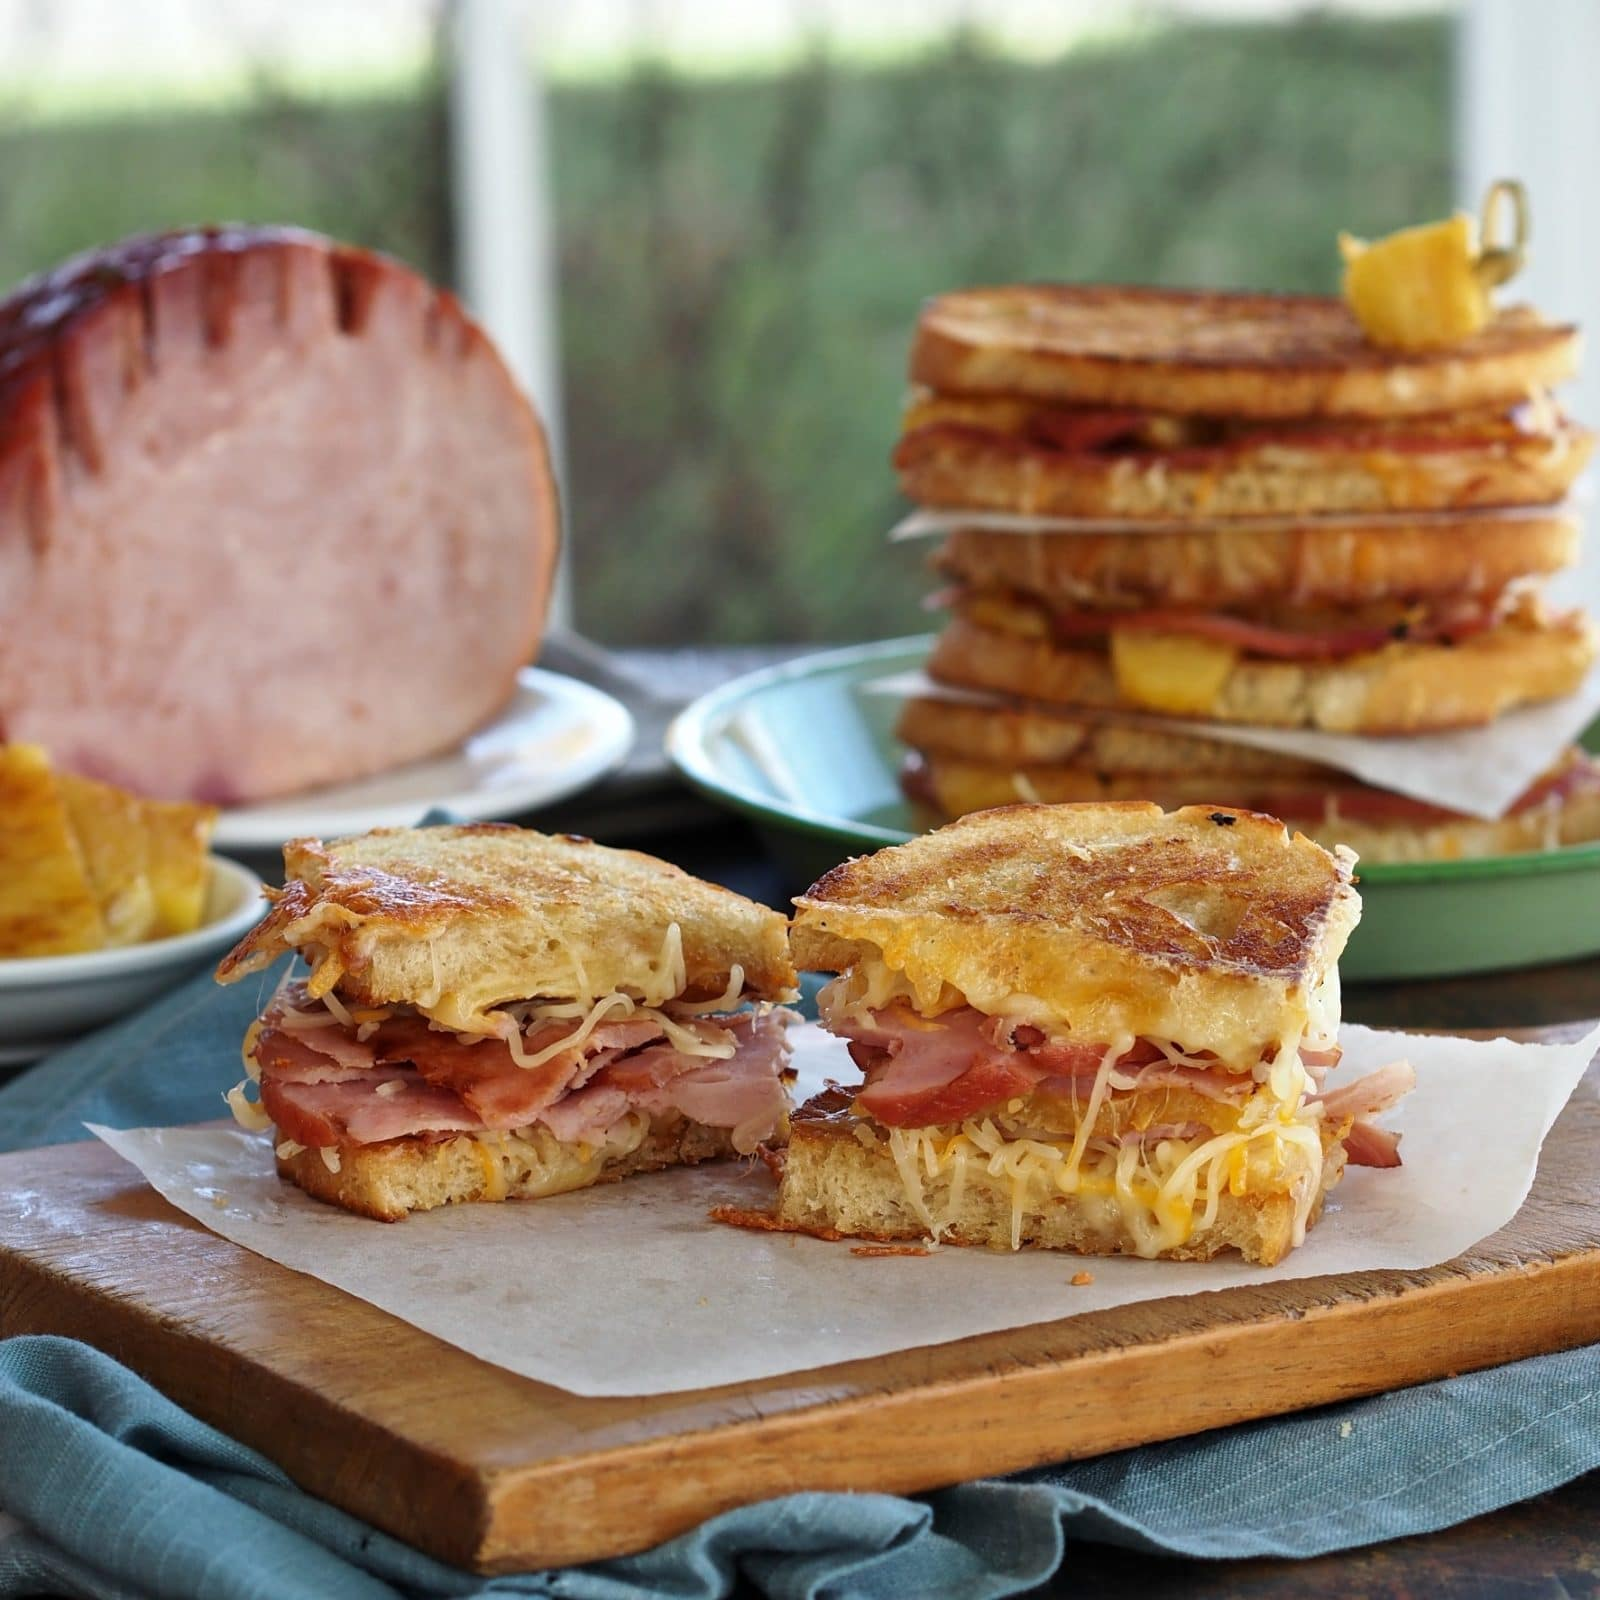 Pepper Jelly Hawaiian Grilled Cheese-toasted buttery bread, Gruyere & Mexican cheeses, caramelized fresh pineapple & Jones Dairy Ham with hot pepper jelly. Simply Sated